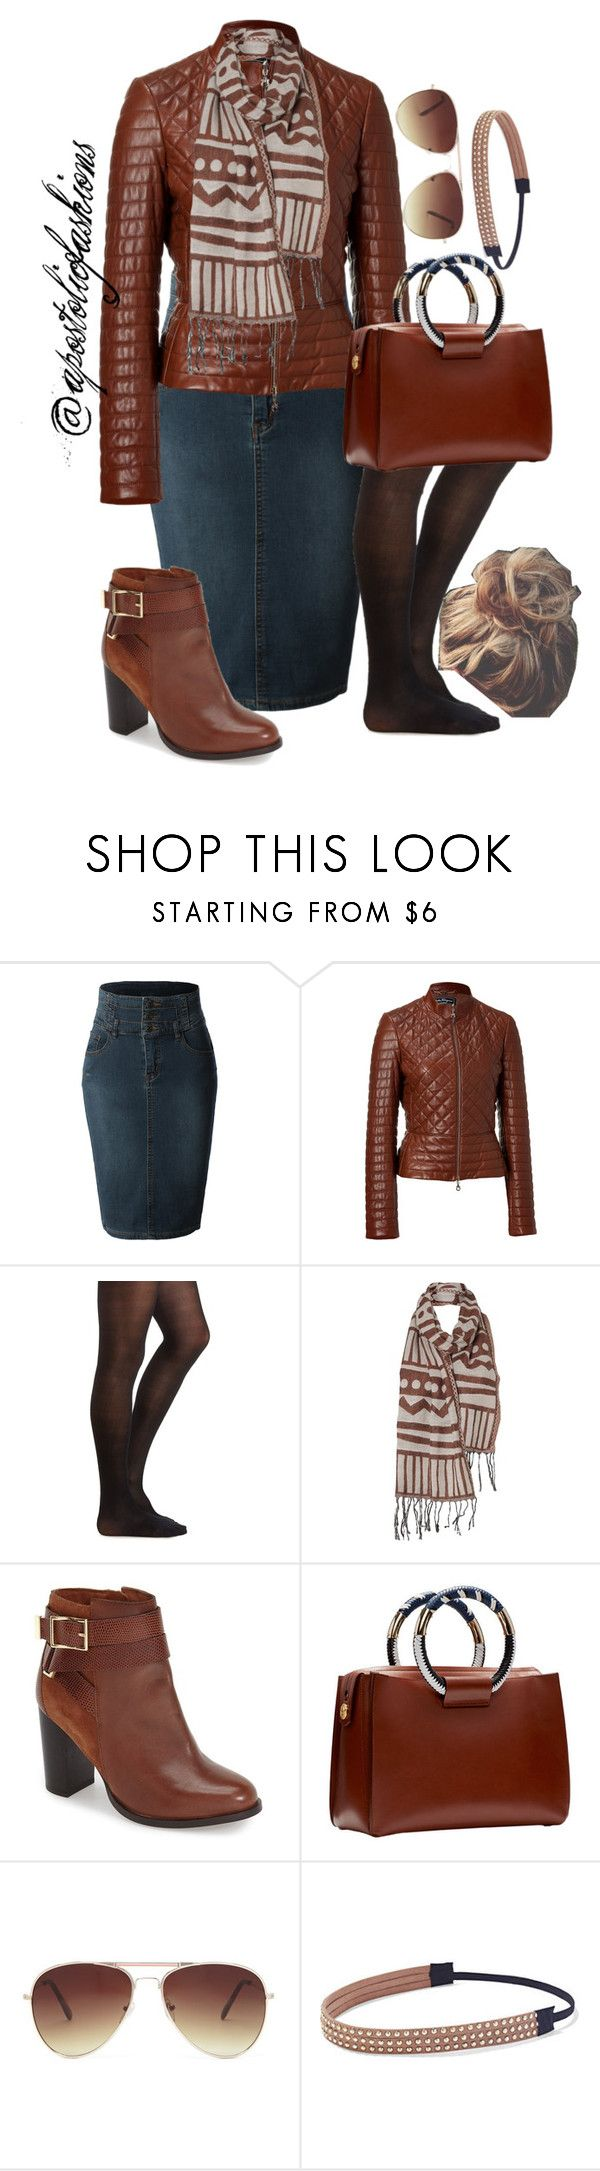 """""""Apostolic Fashions #894"""" by apostolicfashions on Polyvore featuring LE3NO, Salvatore Ferragamo, Charlotte Russe, Vero Moda, Topshop, The Row, Forever 21 and New York & Company"""